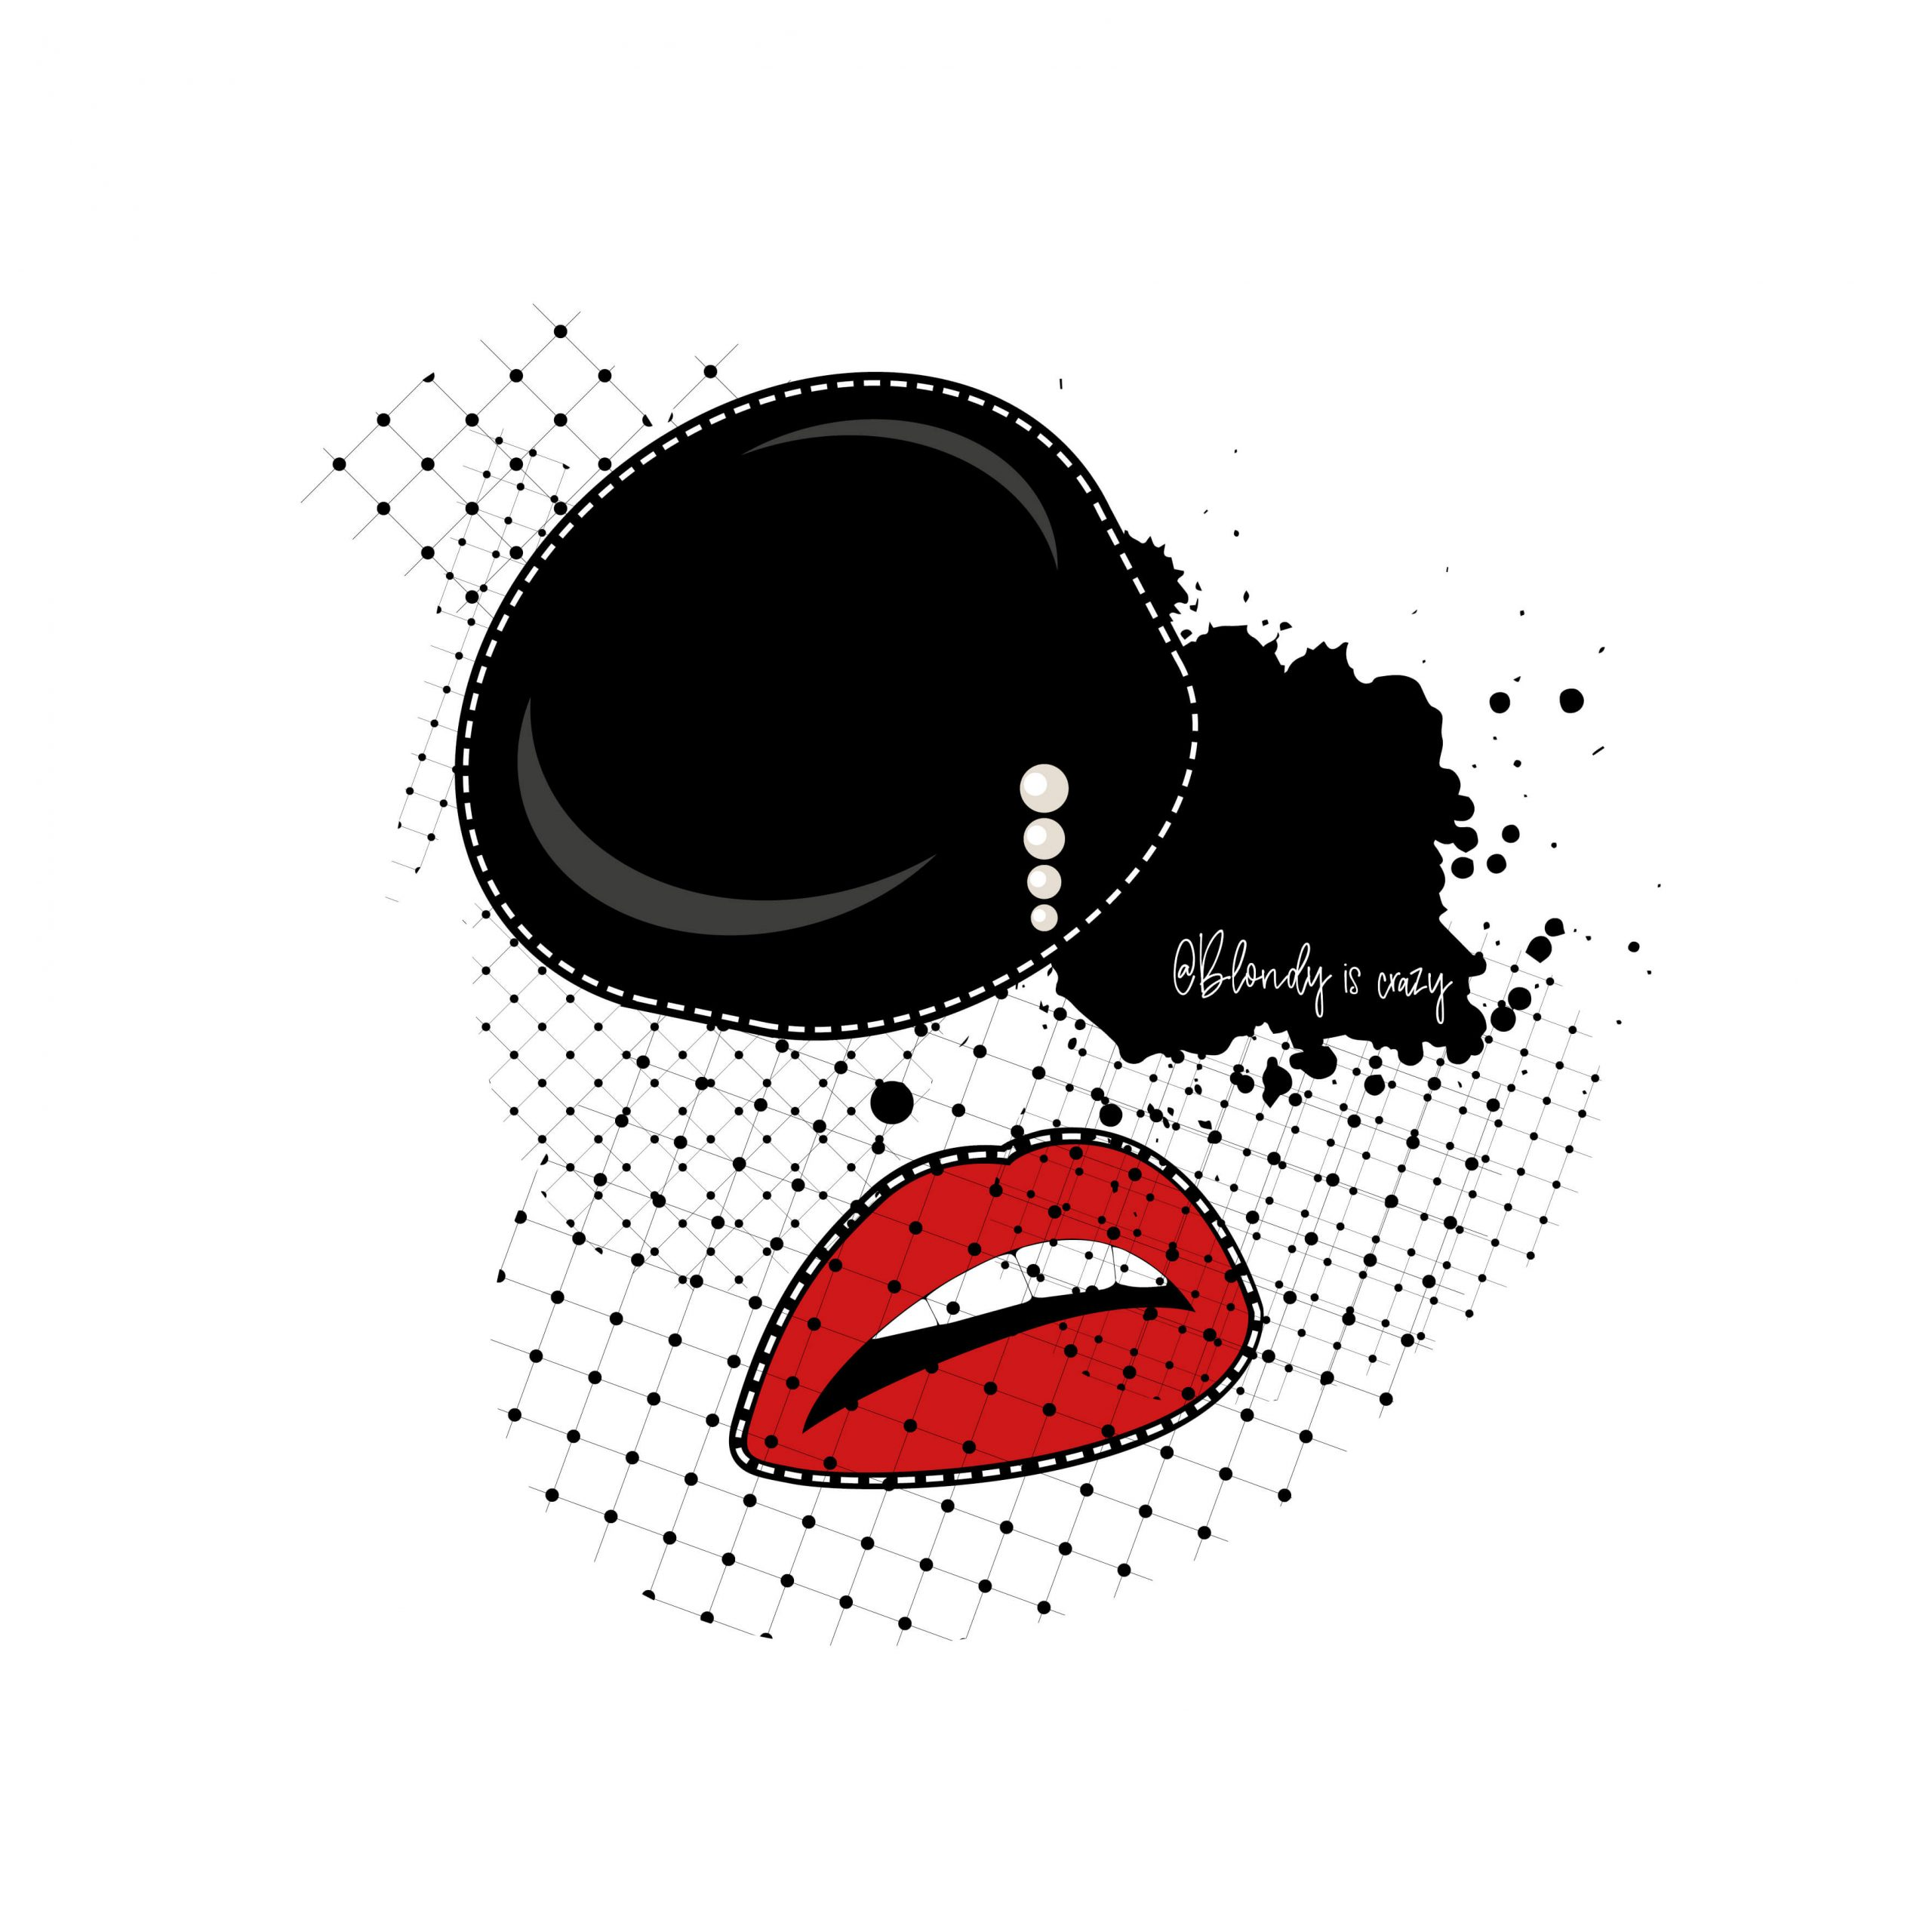 Black Makeup and Red Lips by Blondy is Crazy